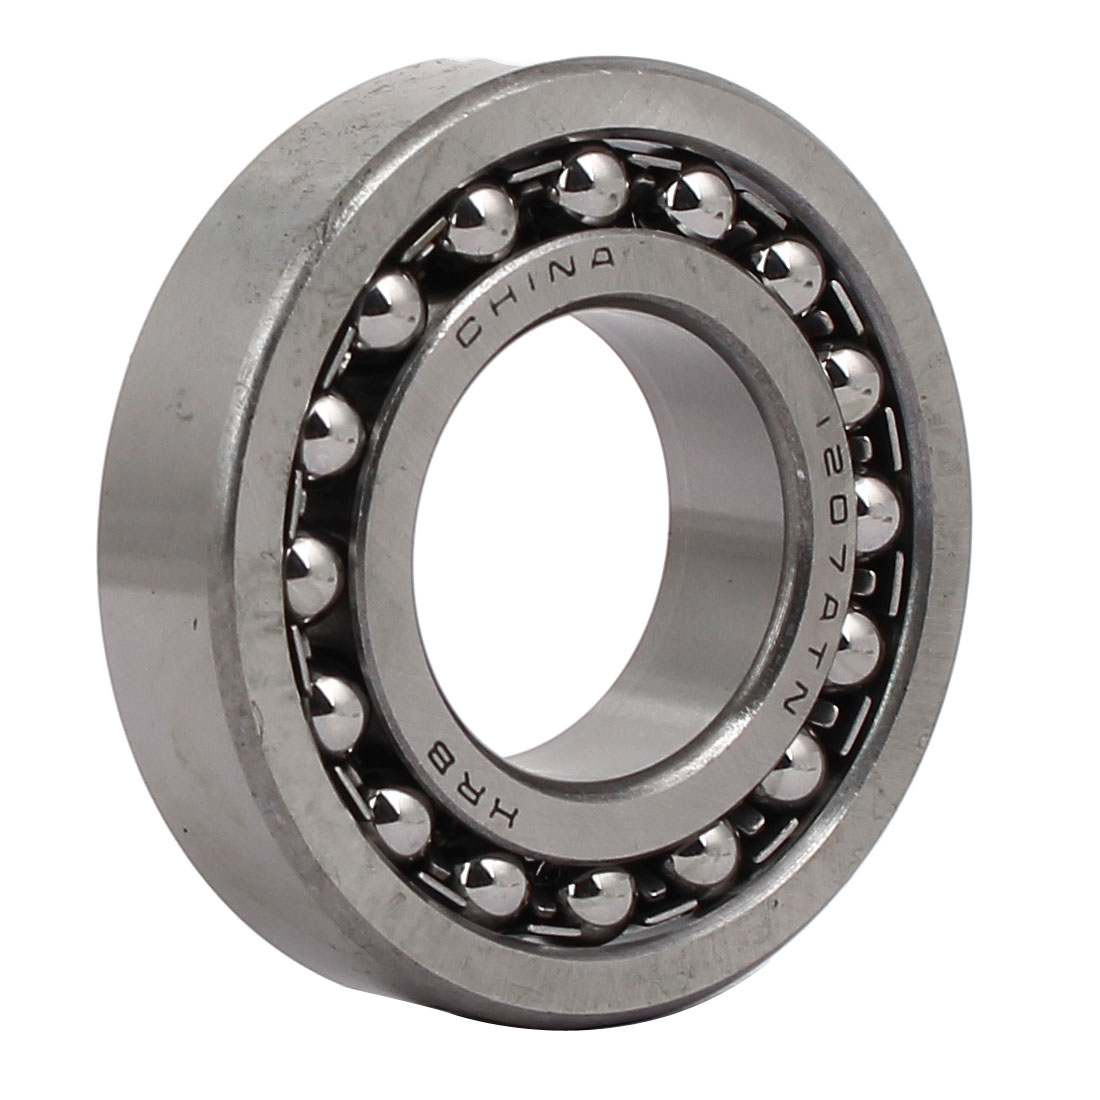 72mmx35mmx17mm 1207 Double Row Self-Aligning Ball Bearing Silver Tone